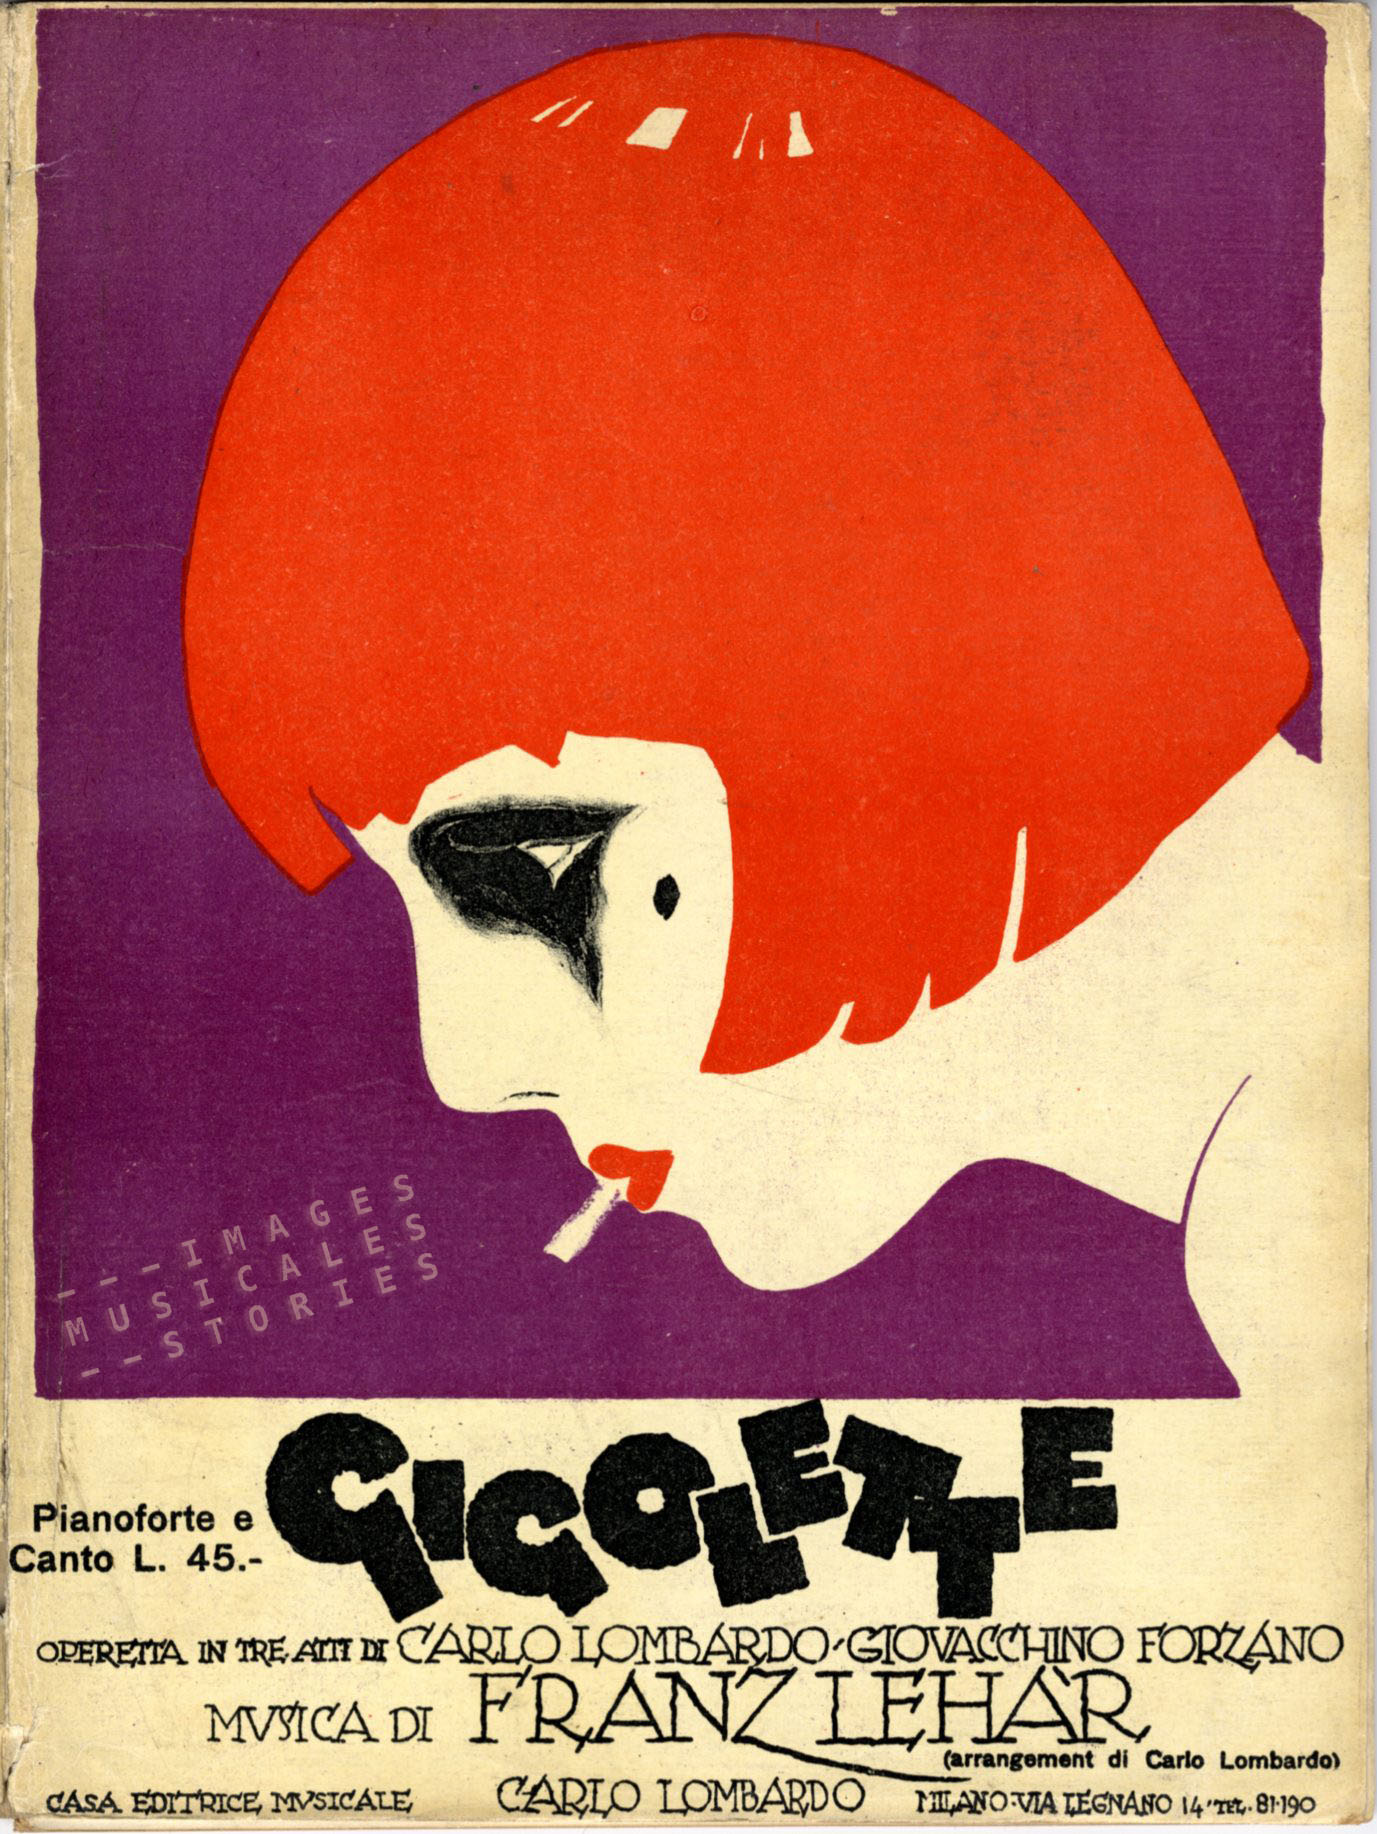 An Italian version of 'Gigolette' (Carlo Lombardo pub., Milano, 1926). Unknown illustrator.